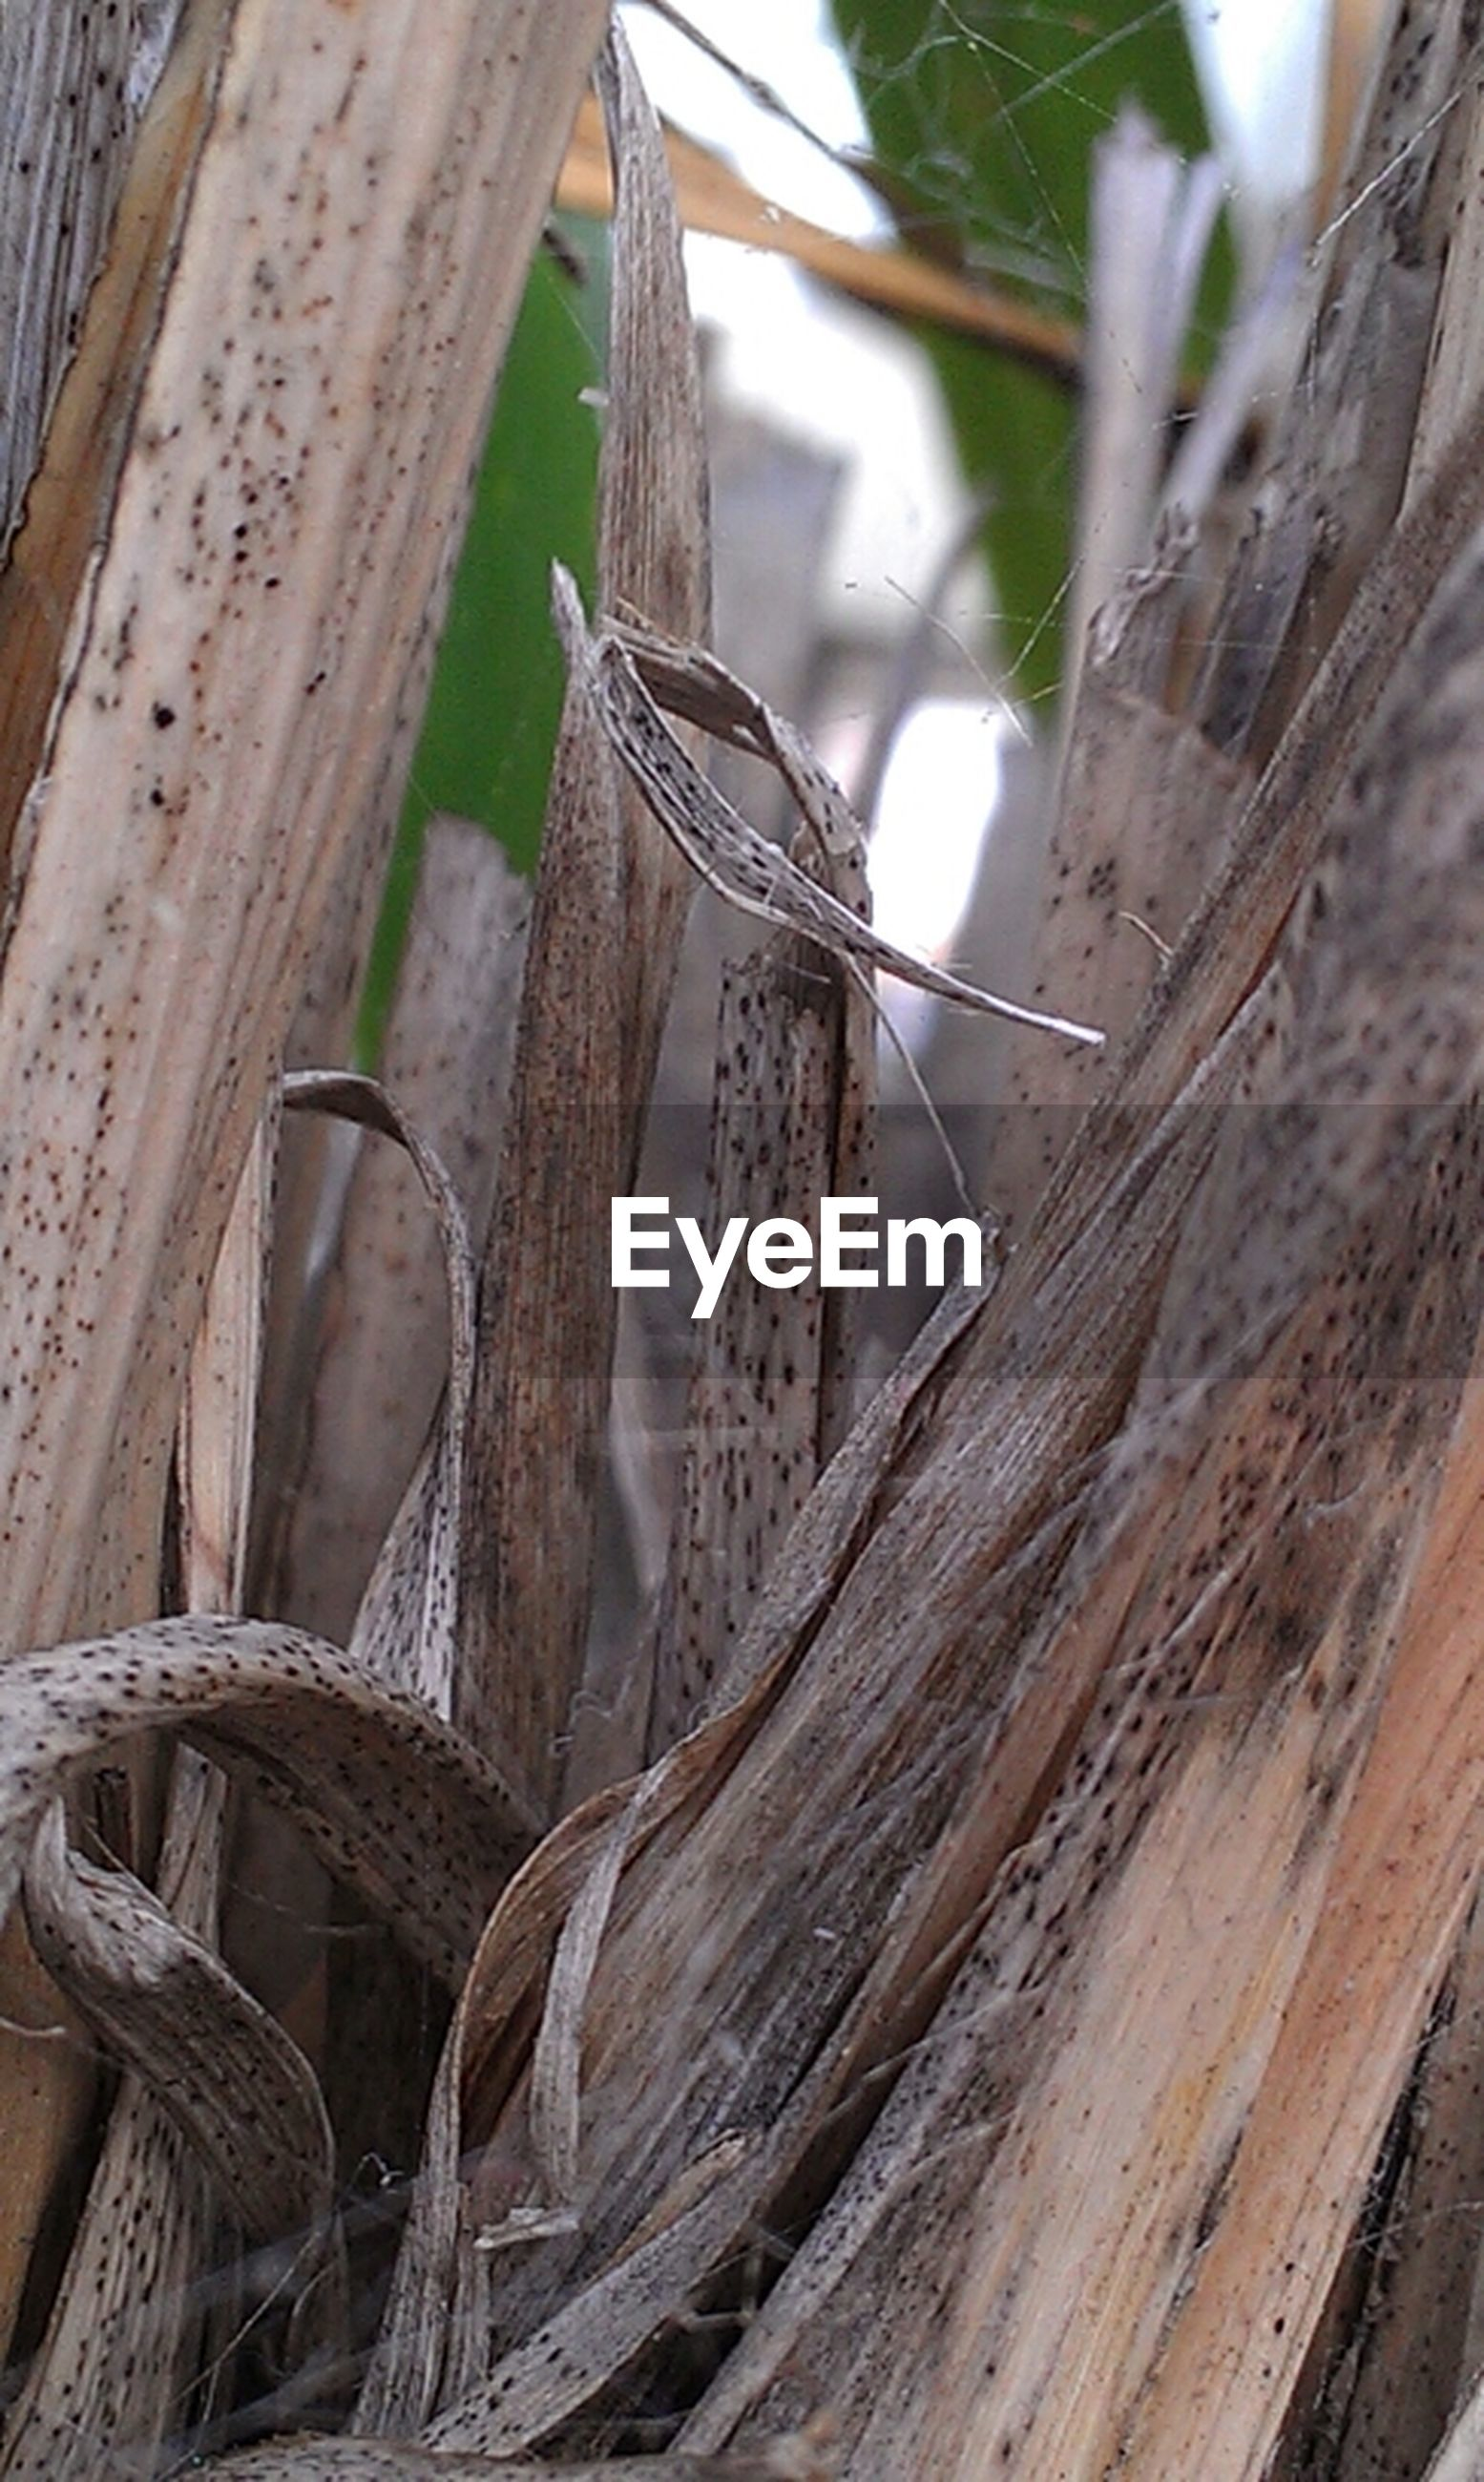 wood - material, close-up, wood, plant, day, wooden, growth, nature, textured, dry, no people, root, tree trunk, outdoors, focus on foreground, tree, brown, damaged, log, old